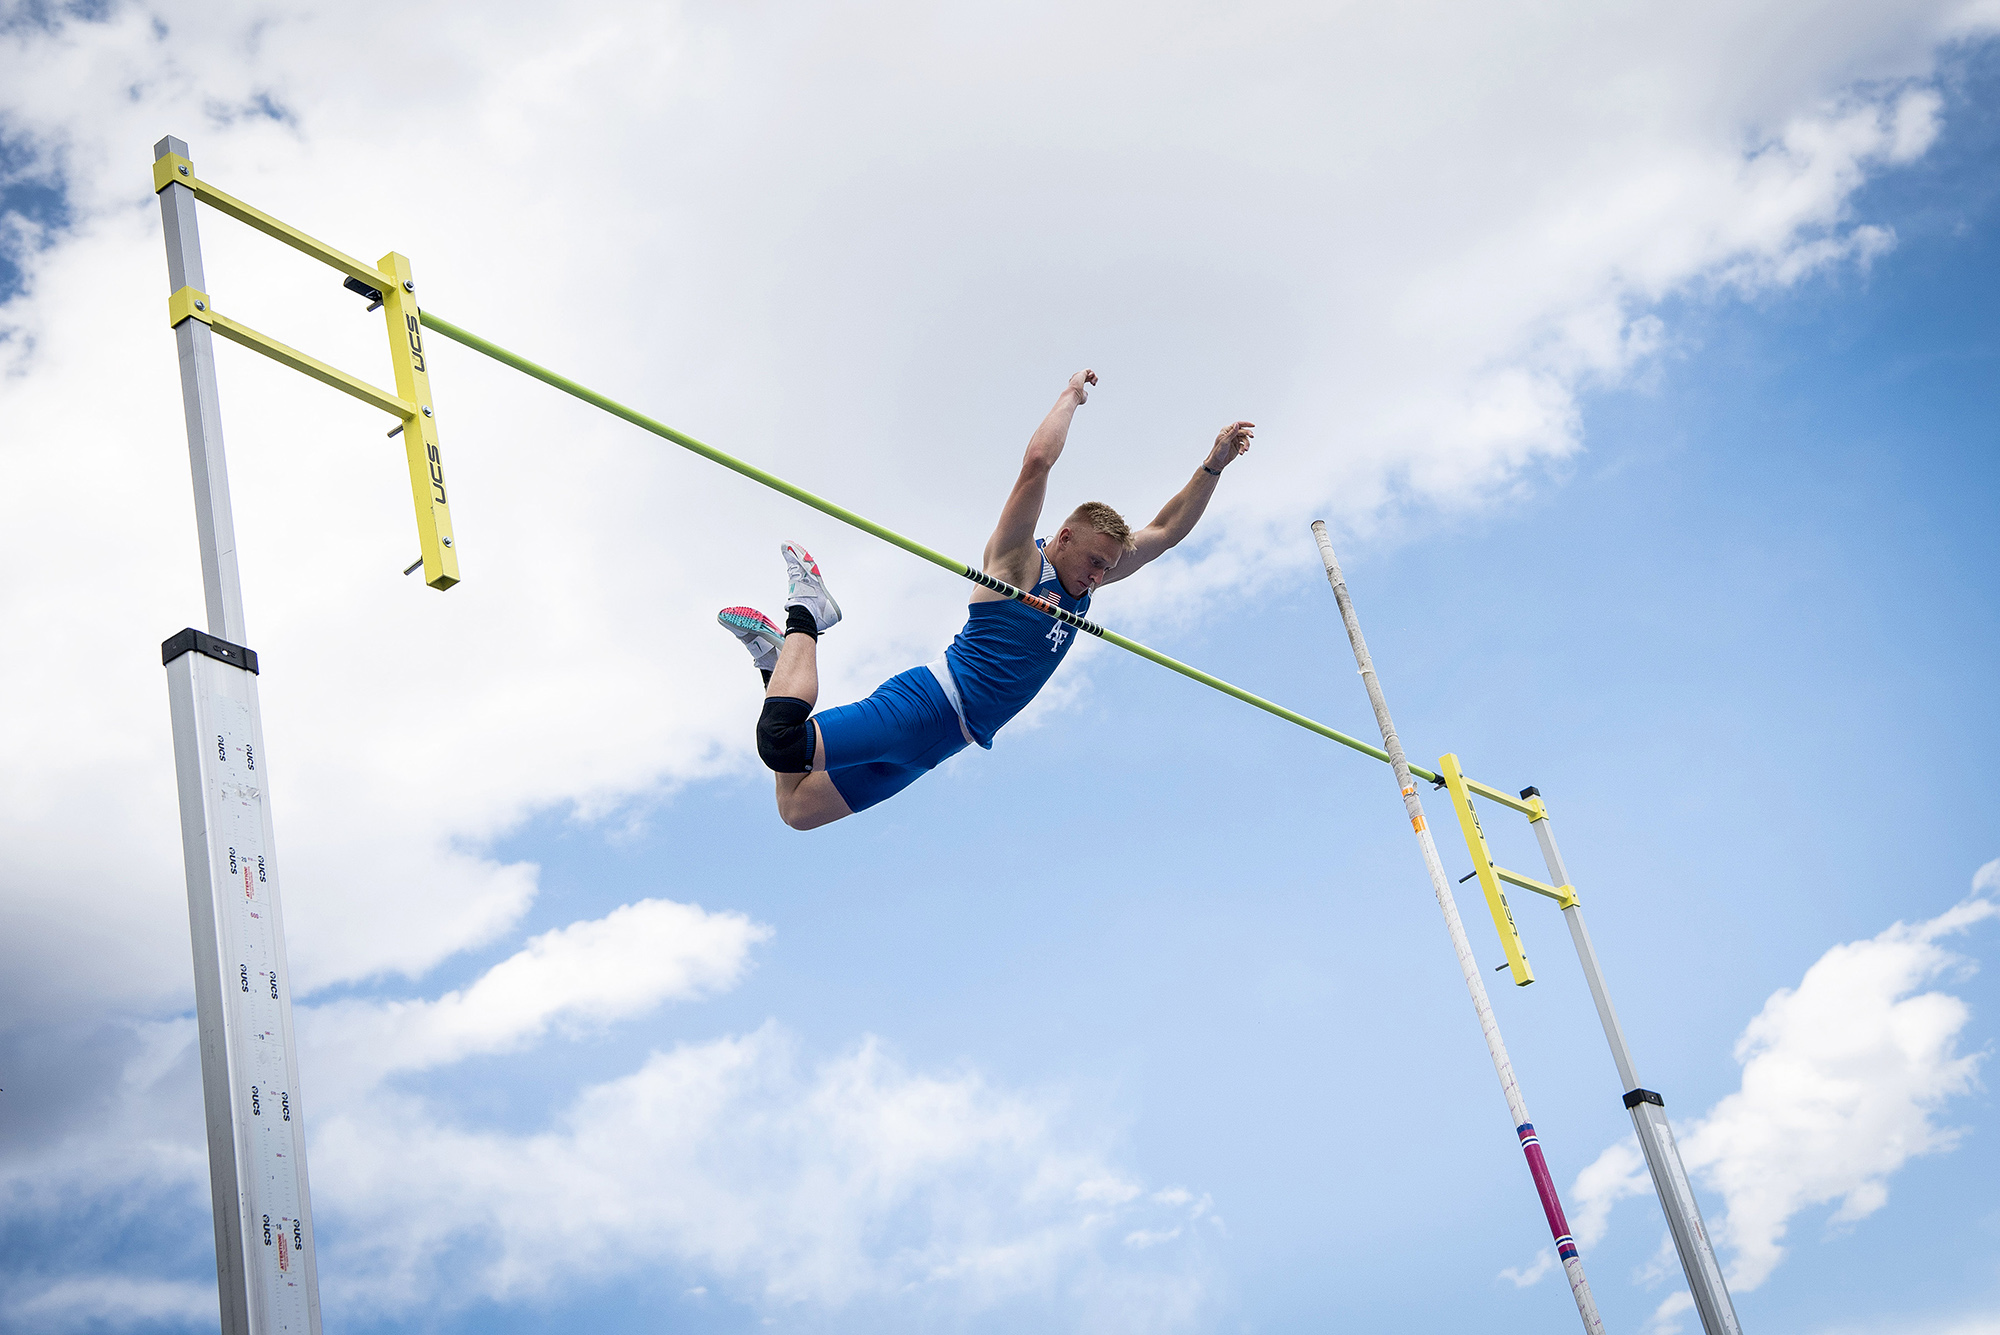 """Air Force's Tyler Gurchiek competes in the men's pole vault during the Twilight Open at the U.S. Air Force Academy's Cadet Outdoor Track and Field Complex in Colorado Spring, Colo., May 7, 2021. Gurchiek cleared a vault of 14' 1 1/4"""" during the competition. (Joshua Armstrong/Air Force)"""